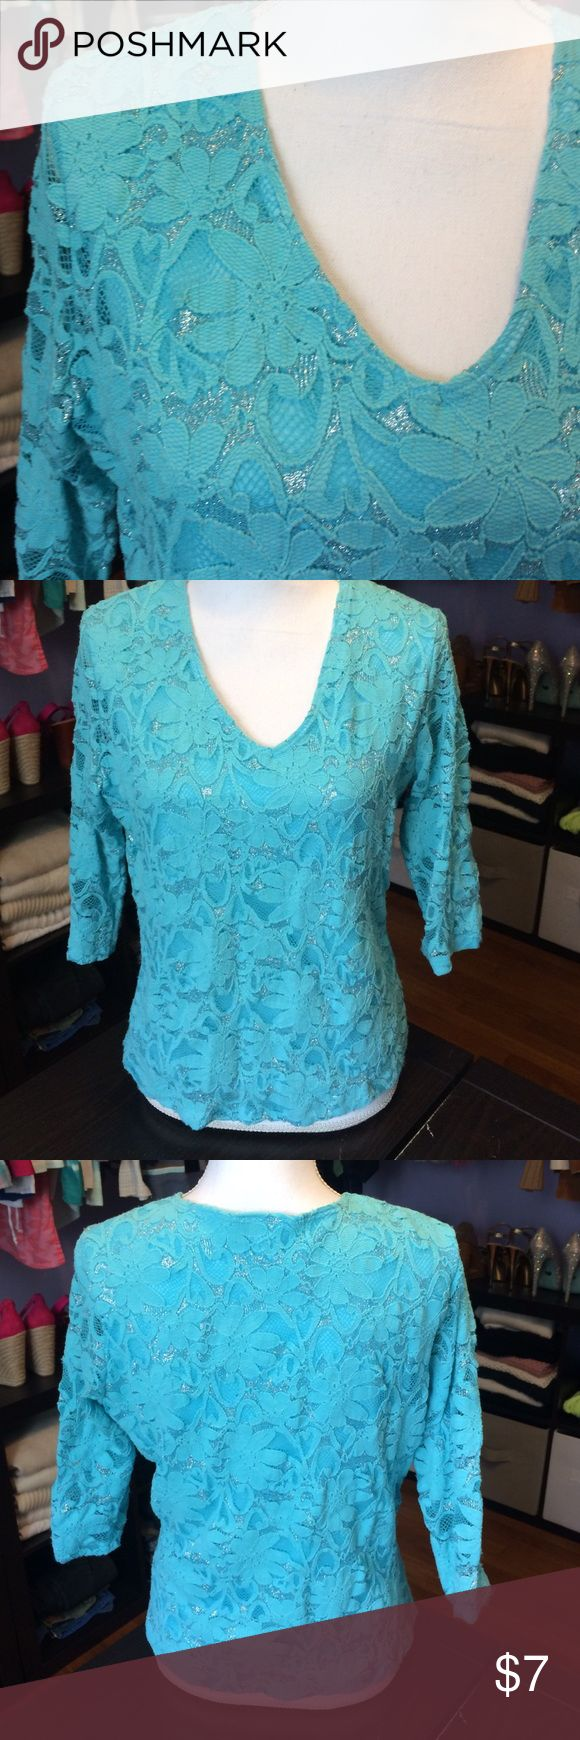 🦃Blue Metallic Blouse Pretty flower and silver design. EUC brittany black Tops Blouses